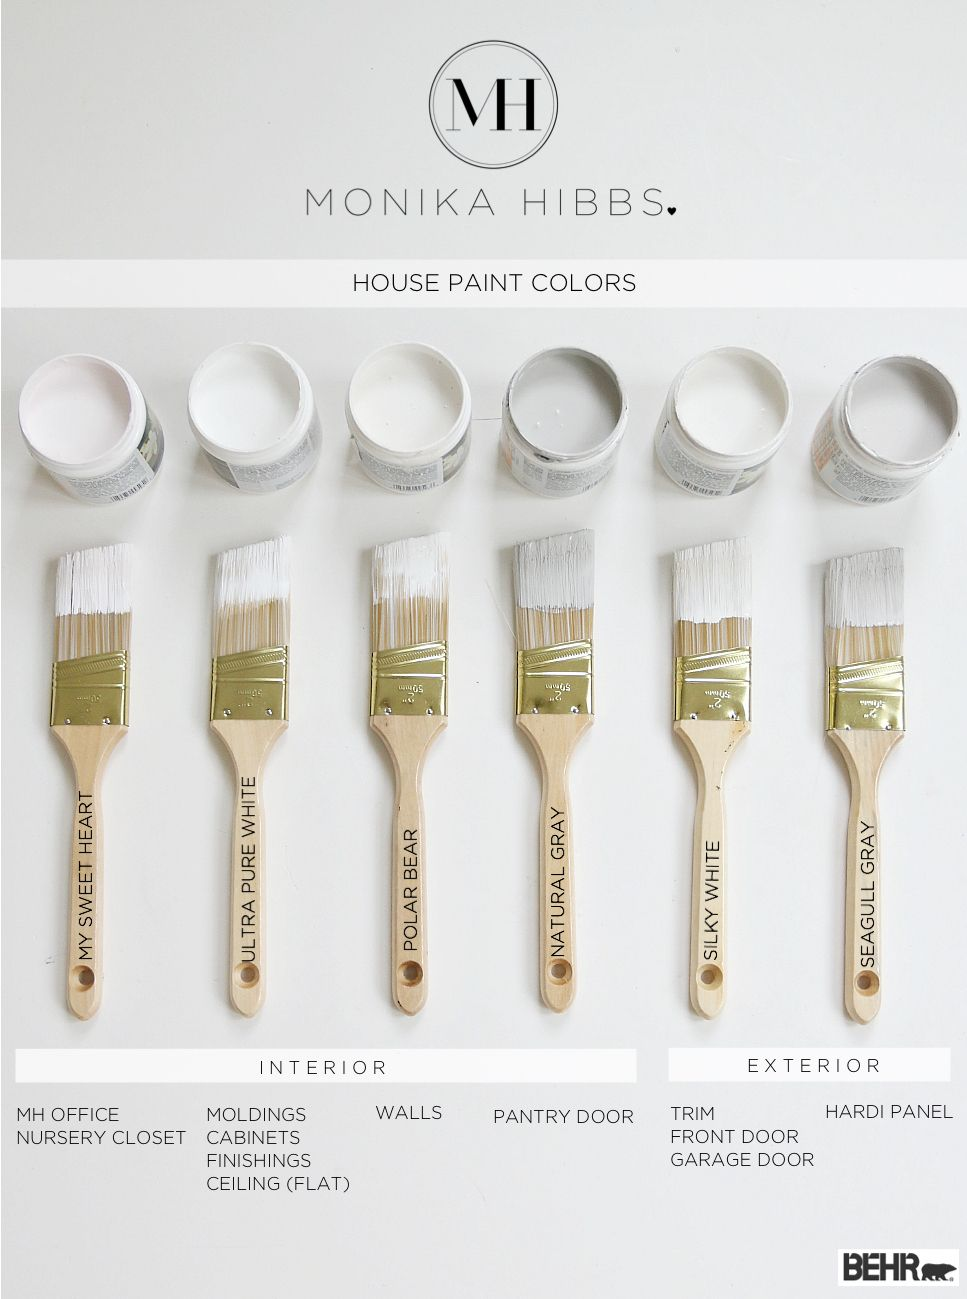 White And Gray Behr Paint Colors Http Monikahibbs Interior